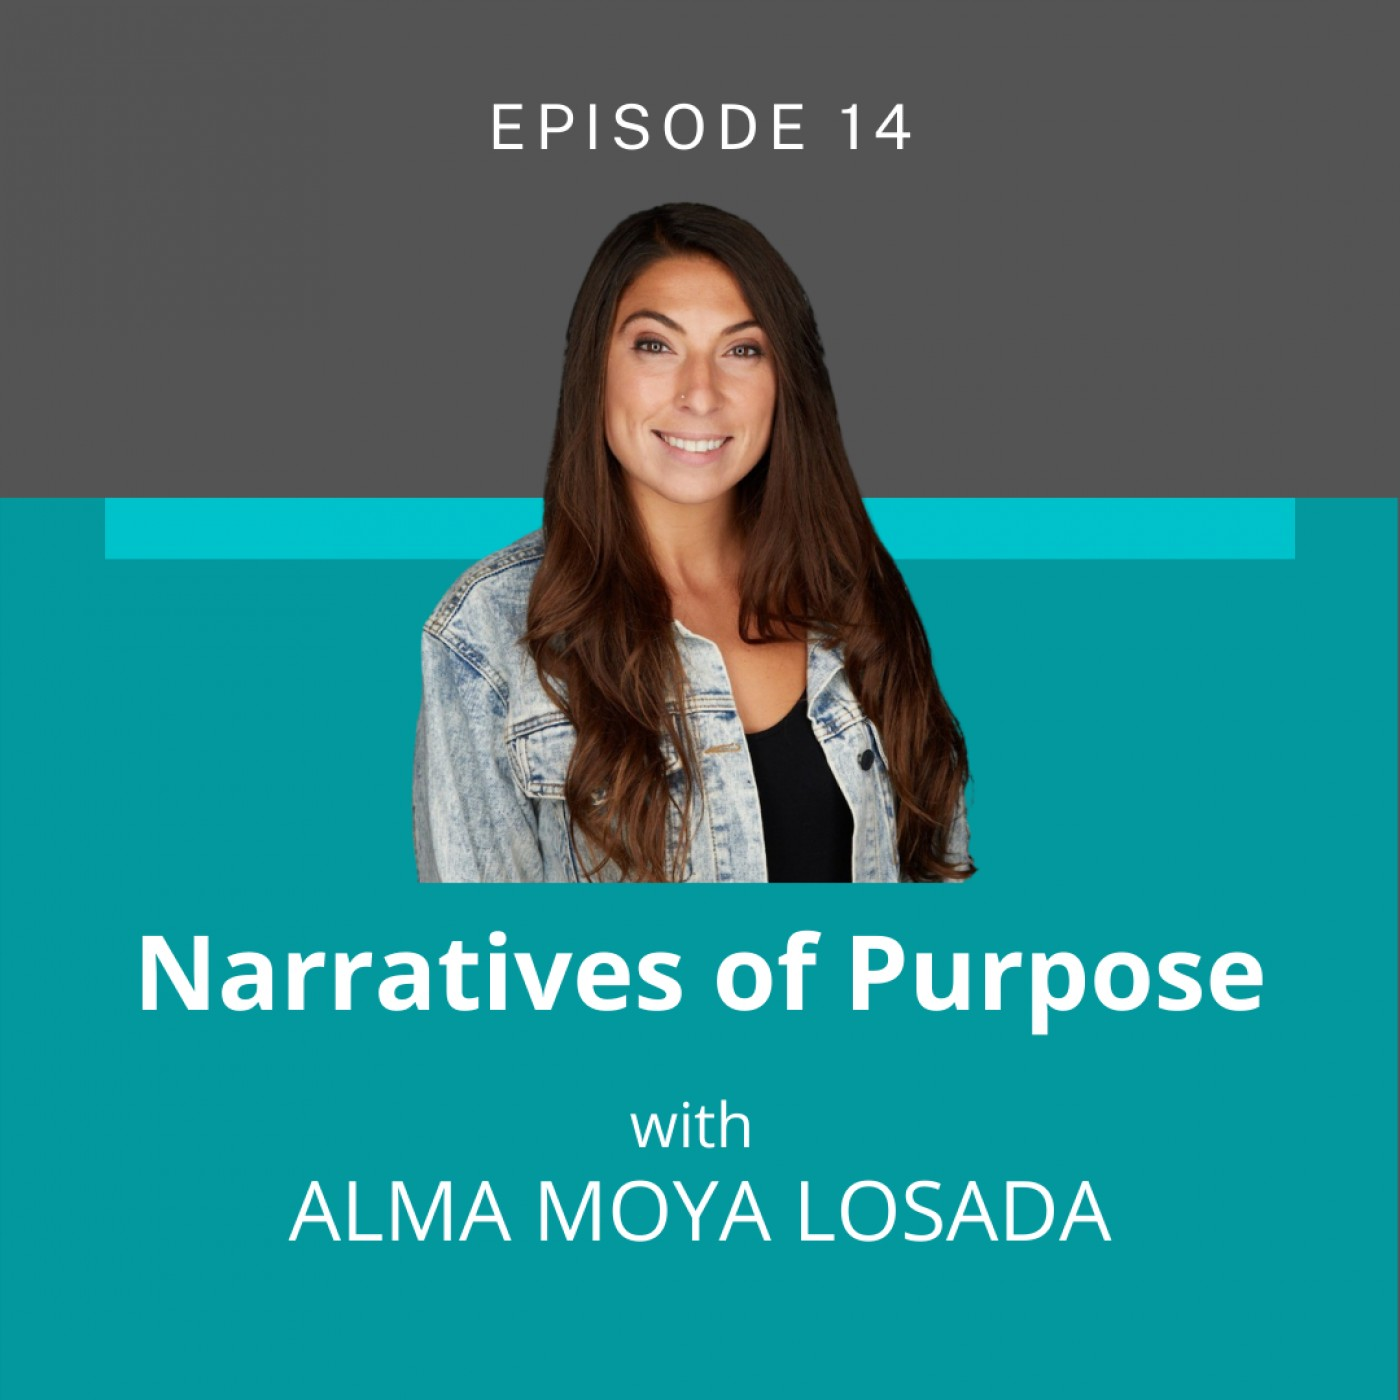 On Gamifying Diversity & Inclusion Education - A Conversation with Alma Moya Losada